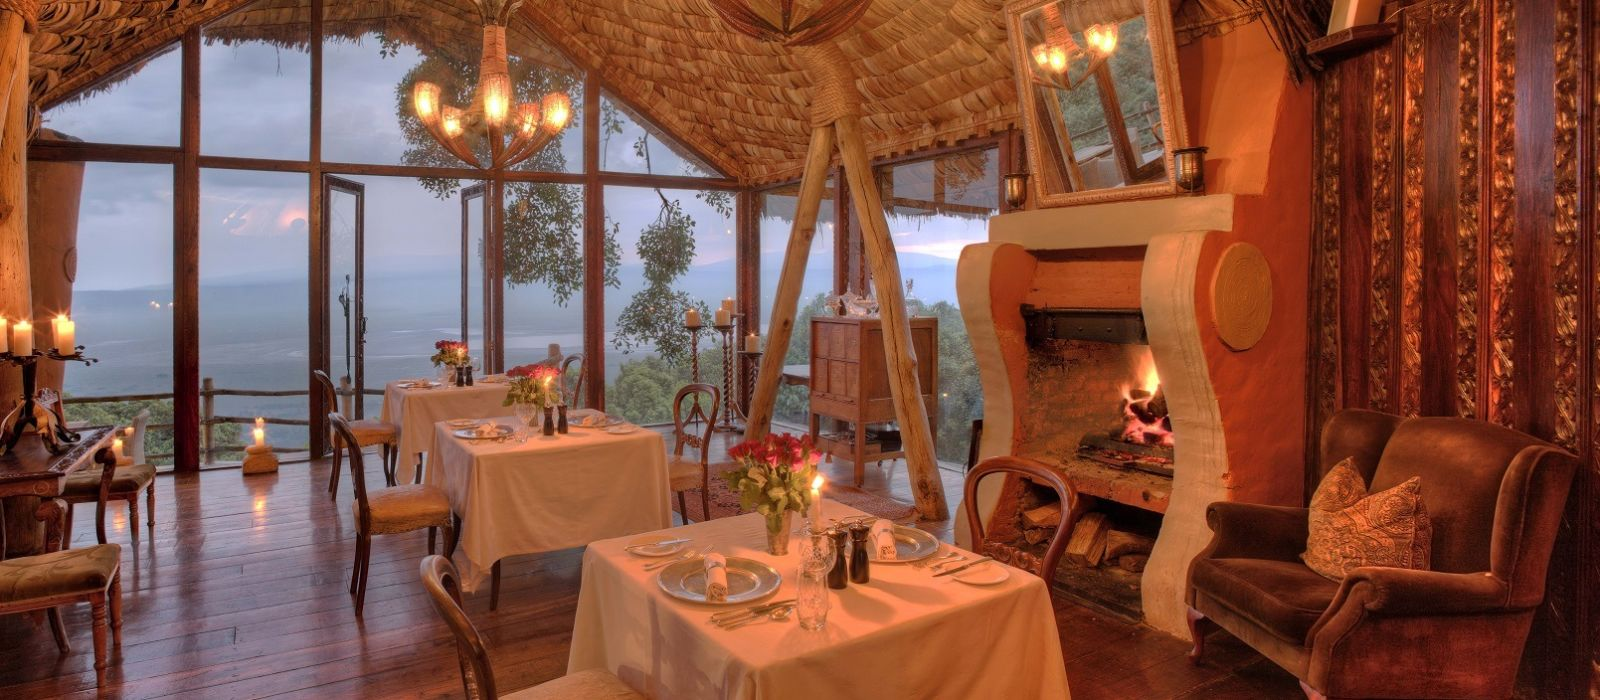 Hotel Ngorongoro Crater Lodge